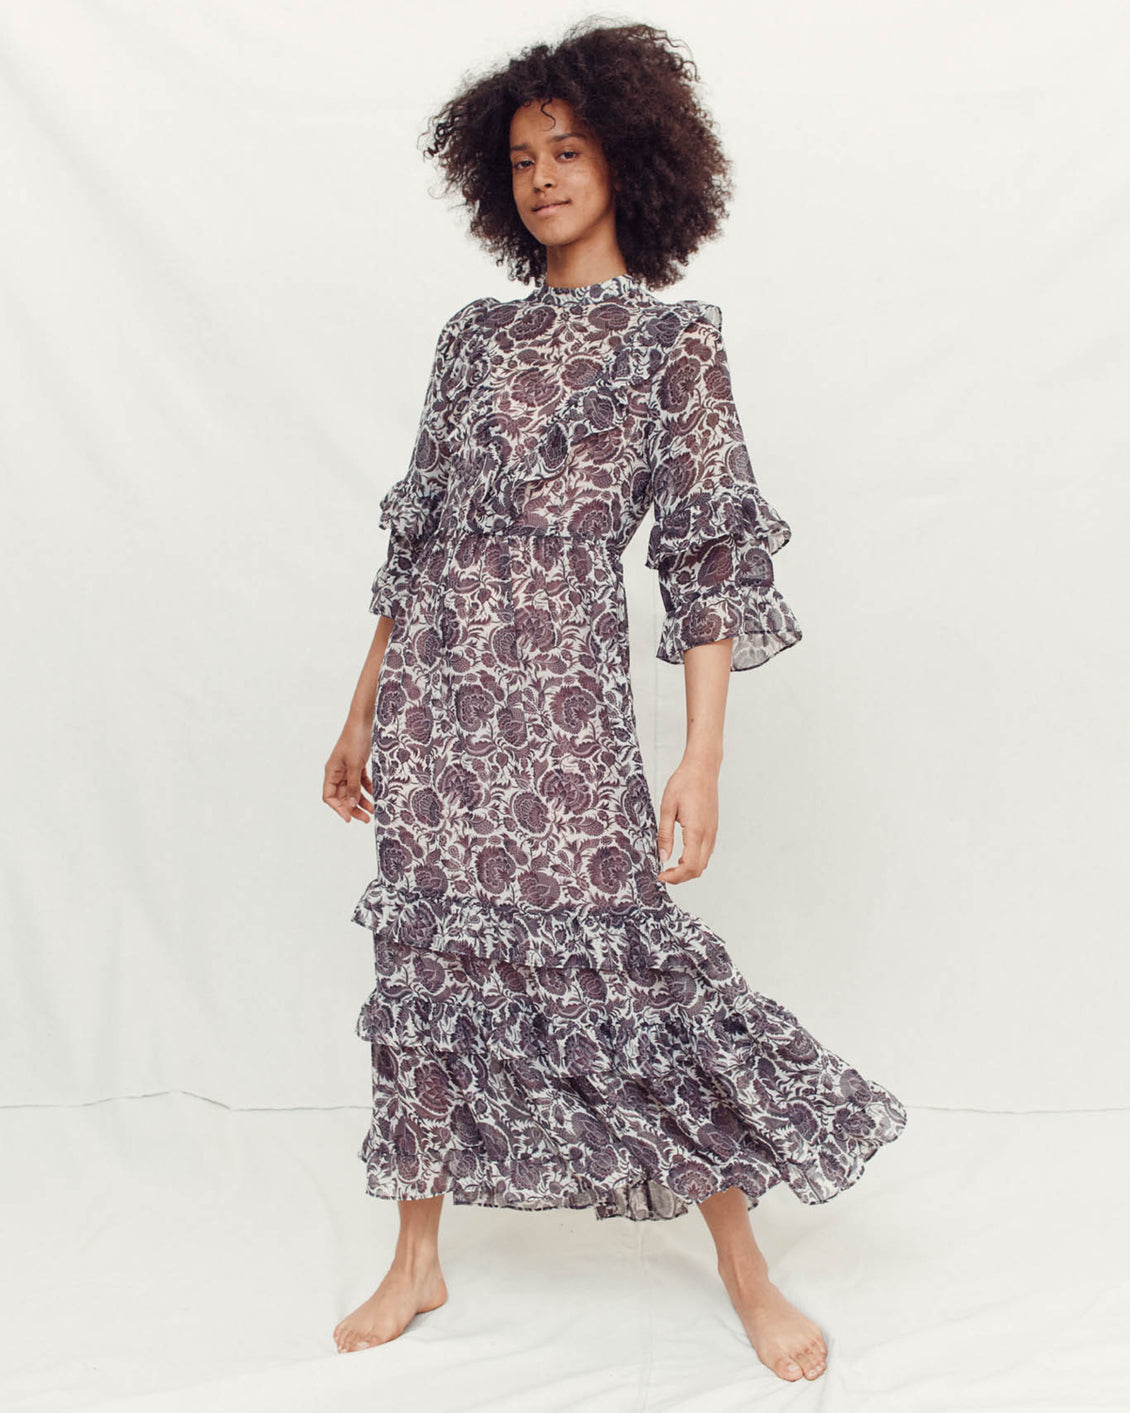 add6e177bc9 Shop the Christy Dawn Dress Collections